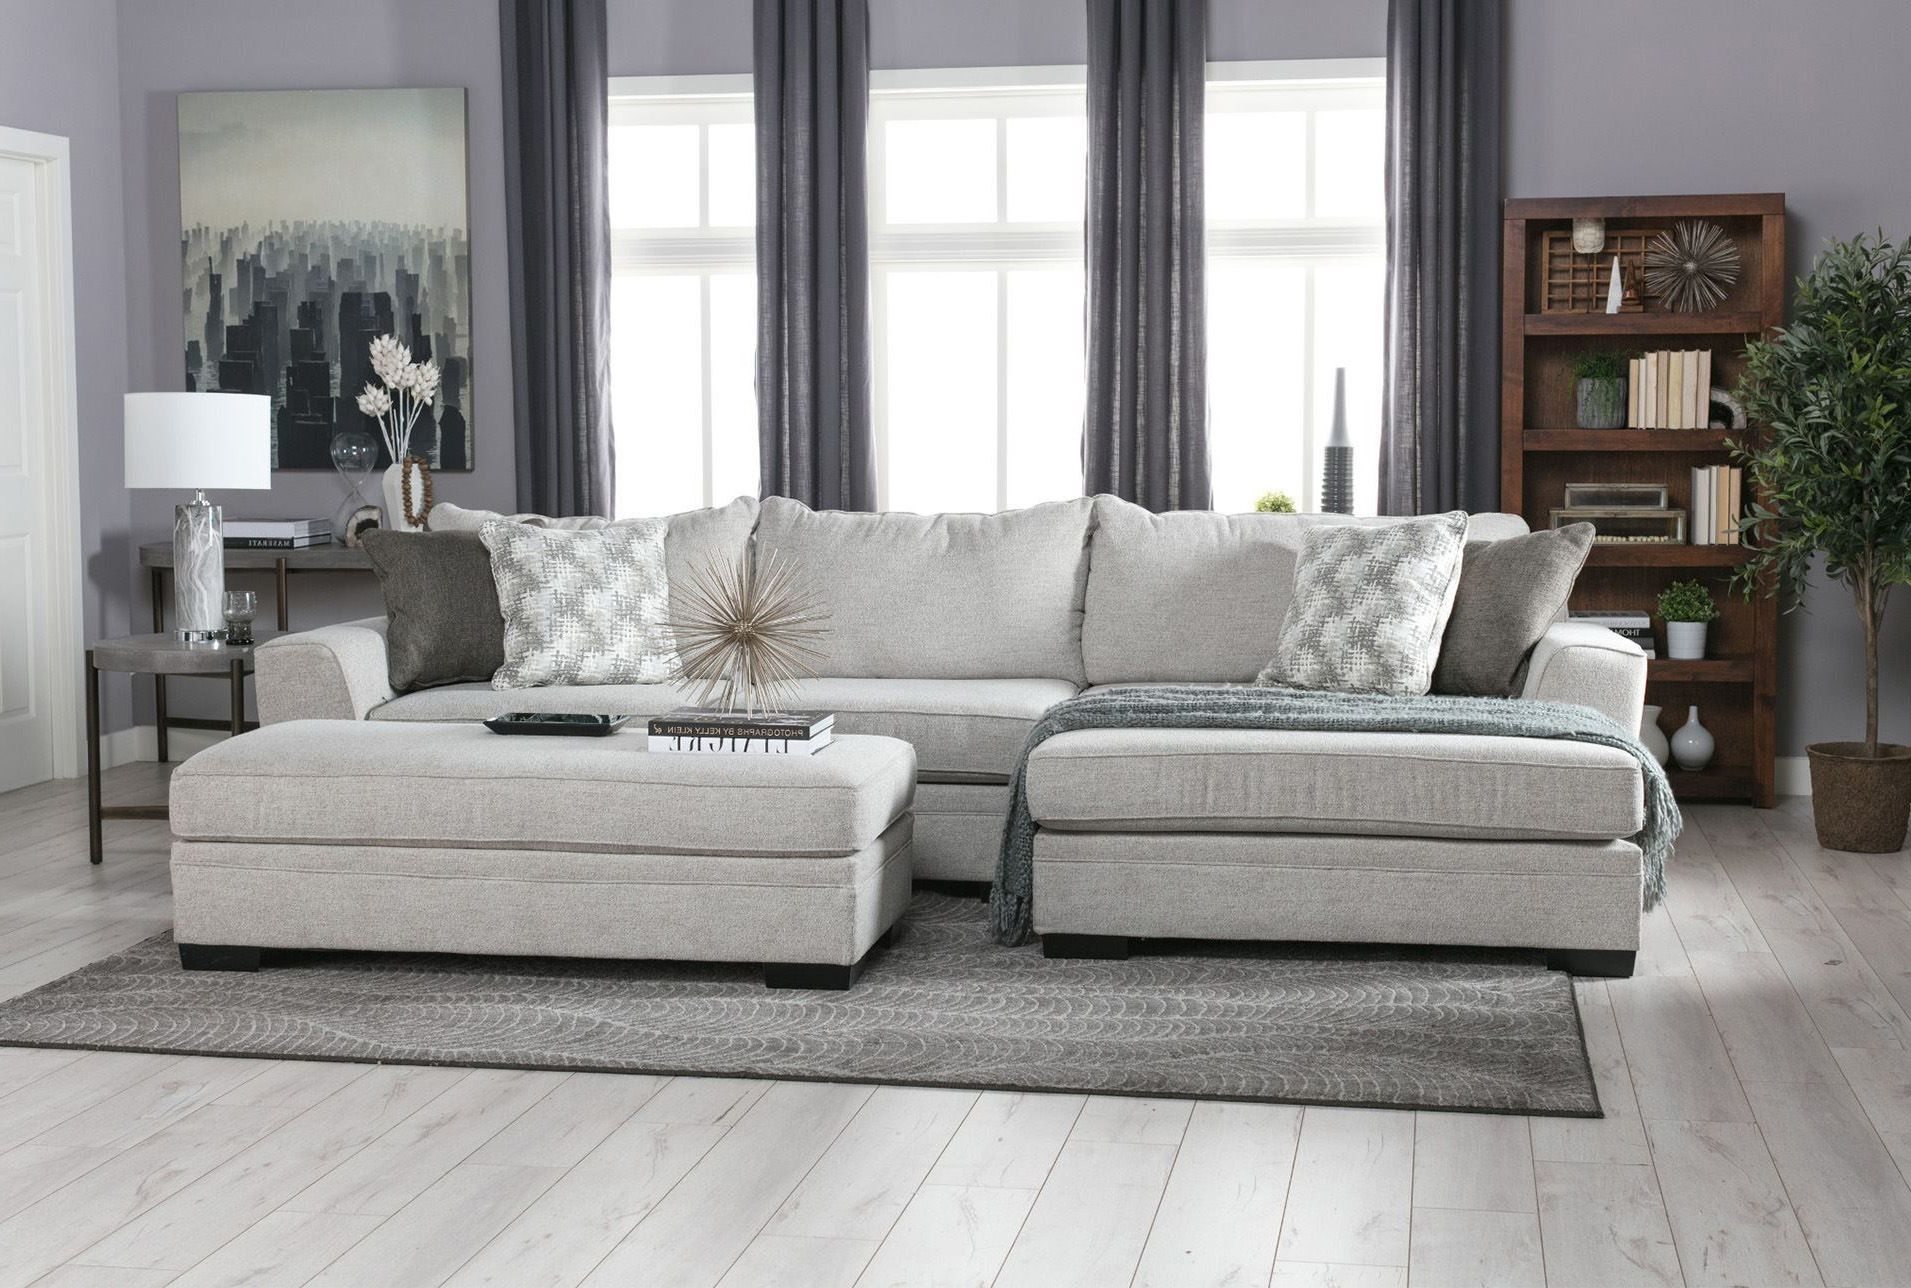 Delano 2 Piece Sectional W/raf Oversized Chaise | Living Room Ideas Intended For Delano 2 Piece Sectionals With Laf Oversized Chaise (View 4 of 30)